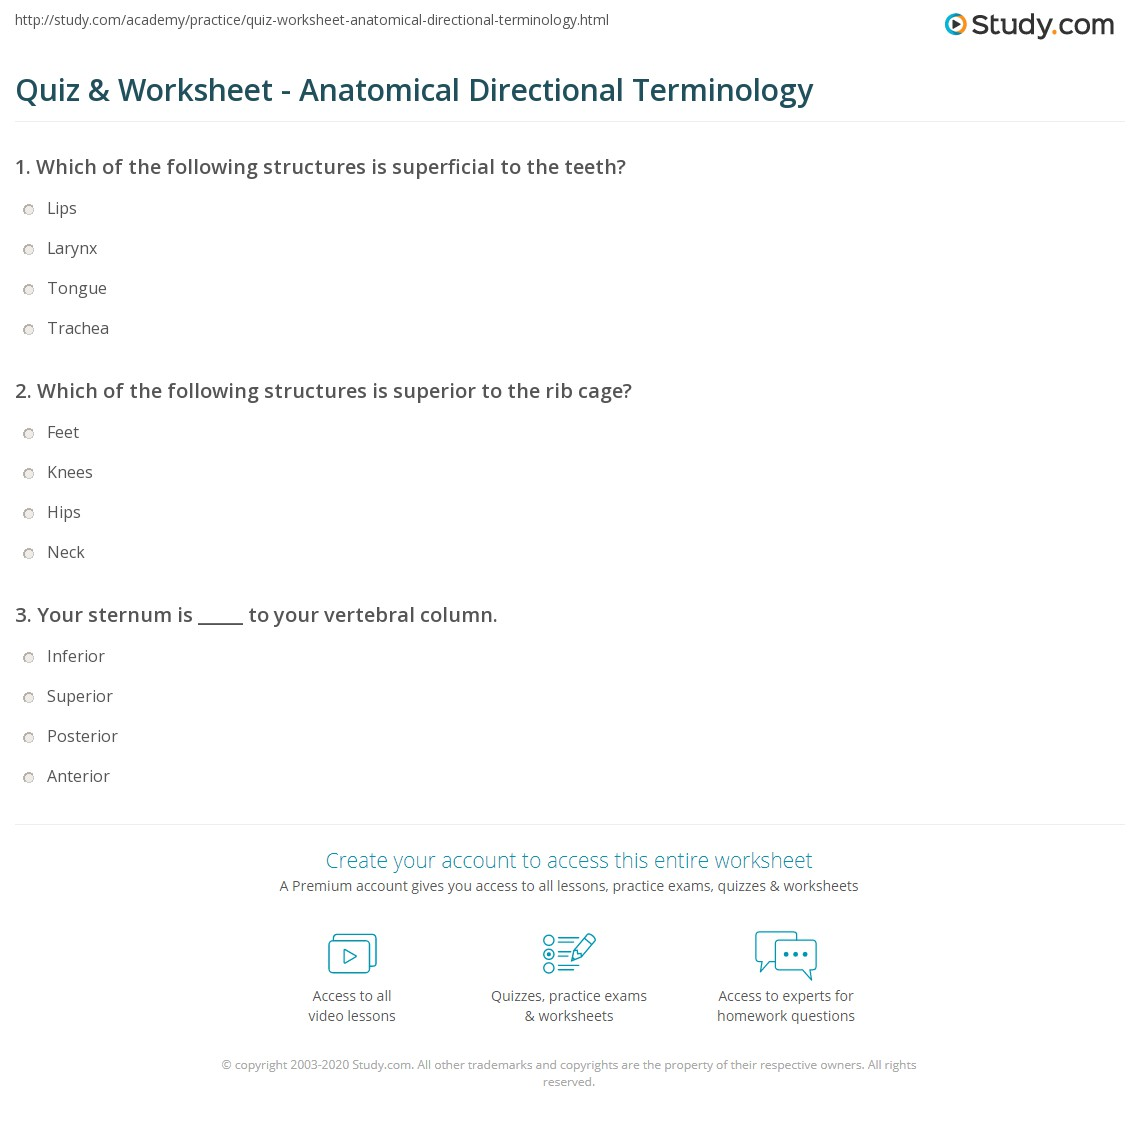 quiz worksheet anatomical directional terminology. Black Bedroom Furniture Sets. Home Design Ideas